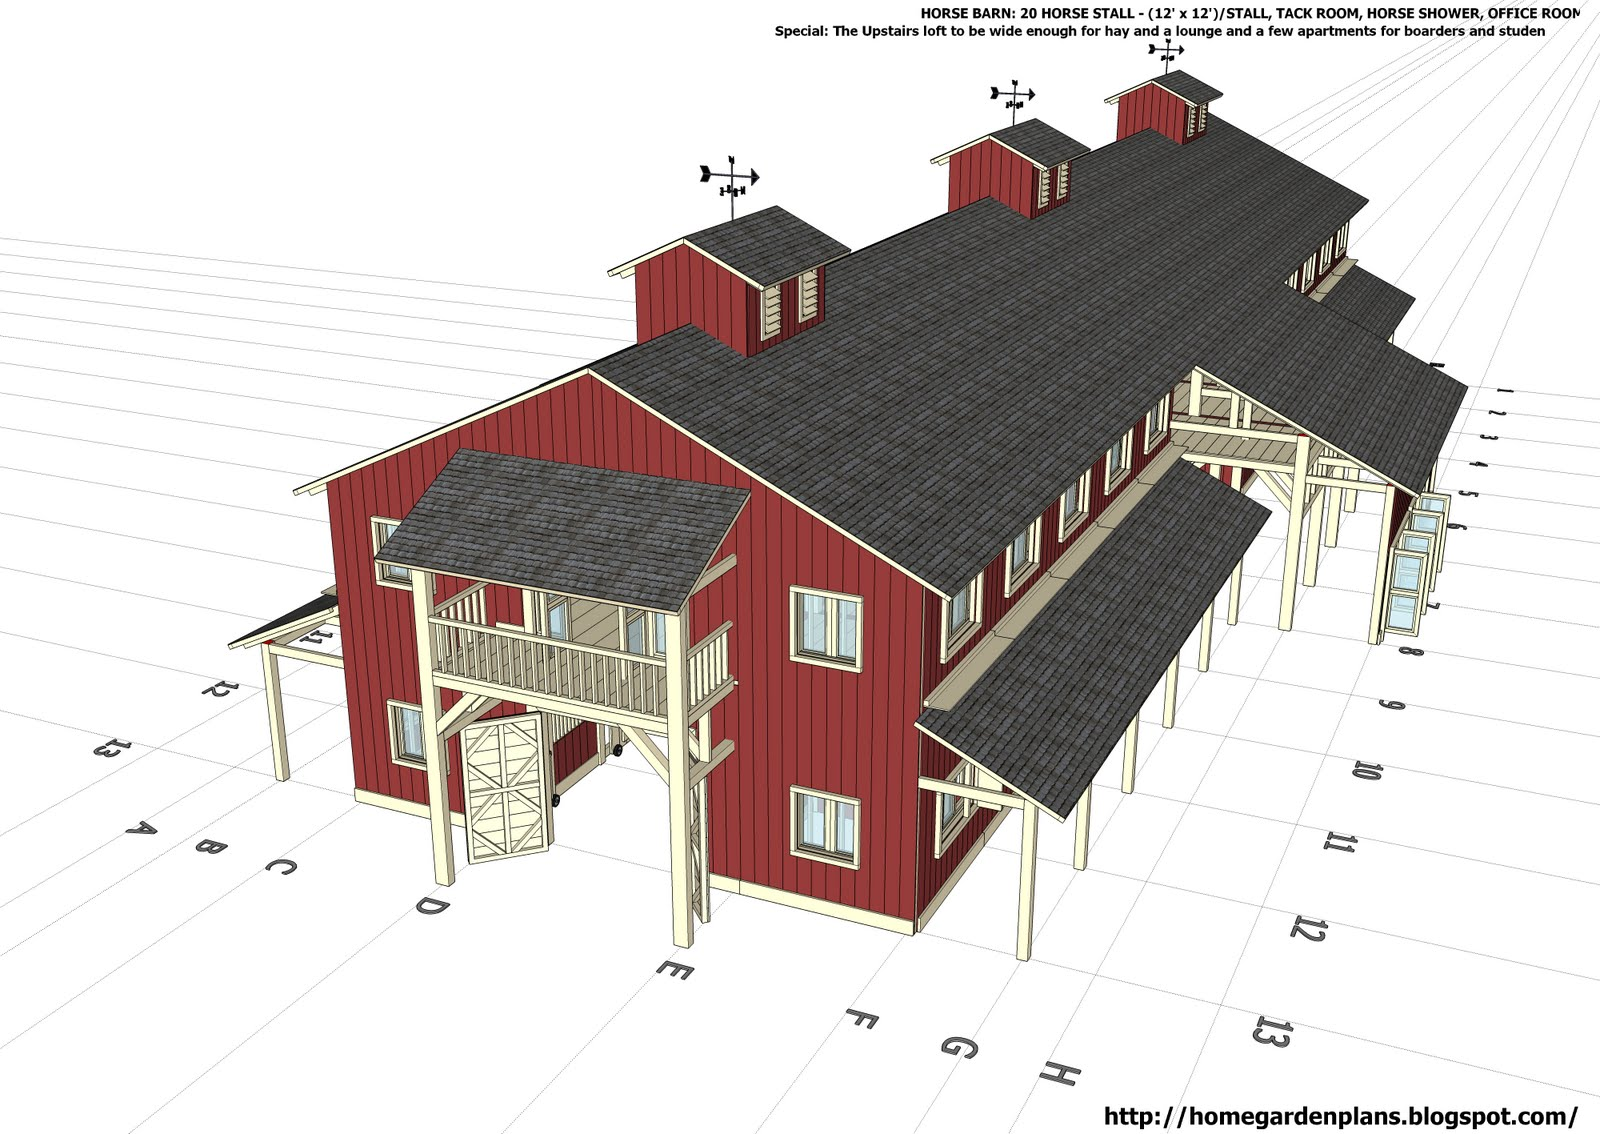 Home garden plans horse barns for Horse barn designs